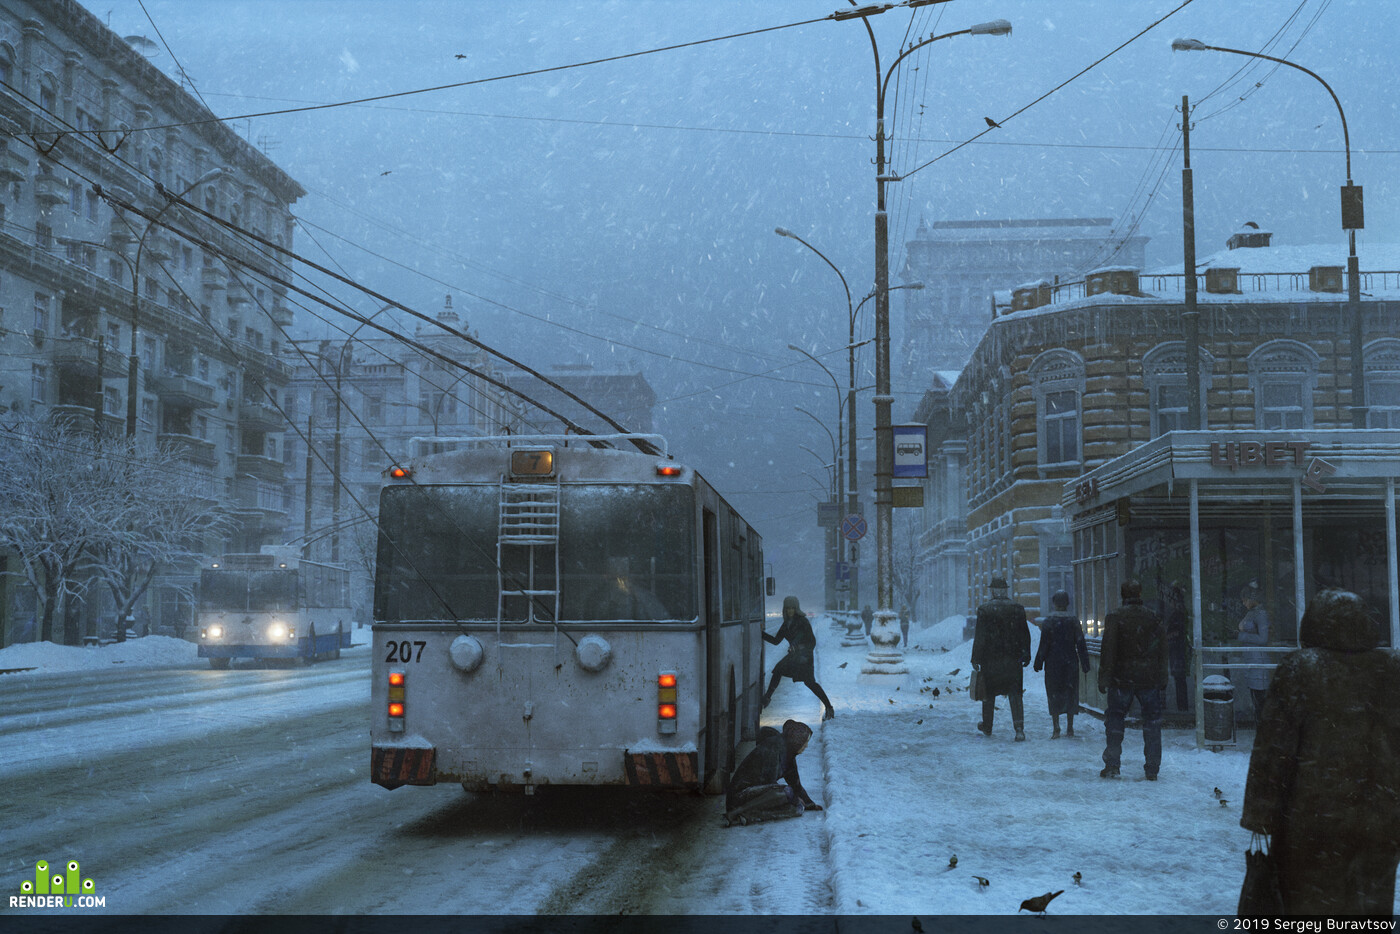 busstop, cg art, winter